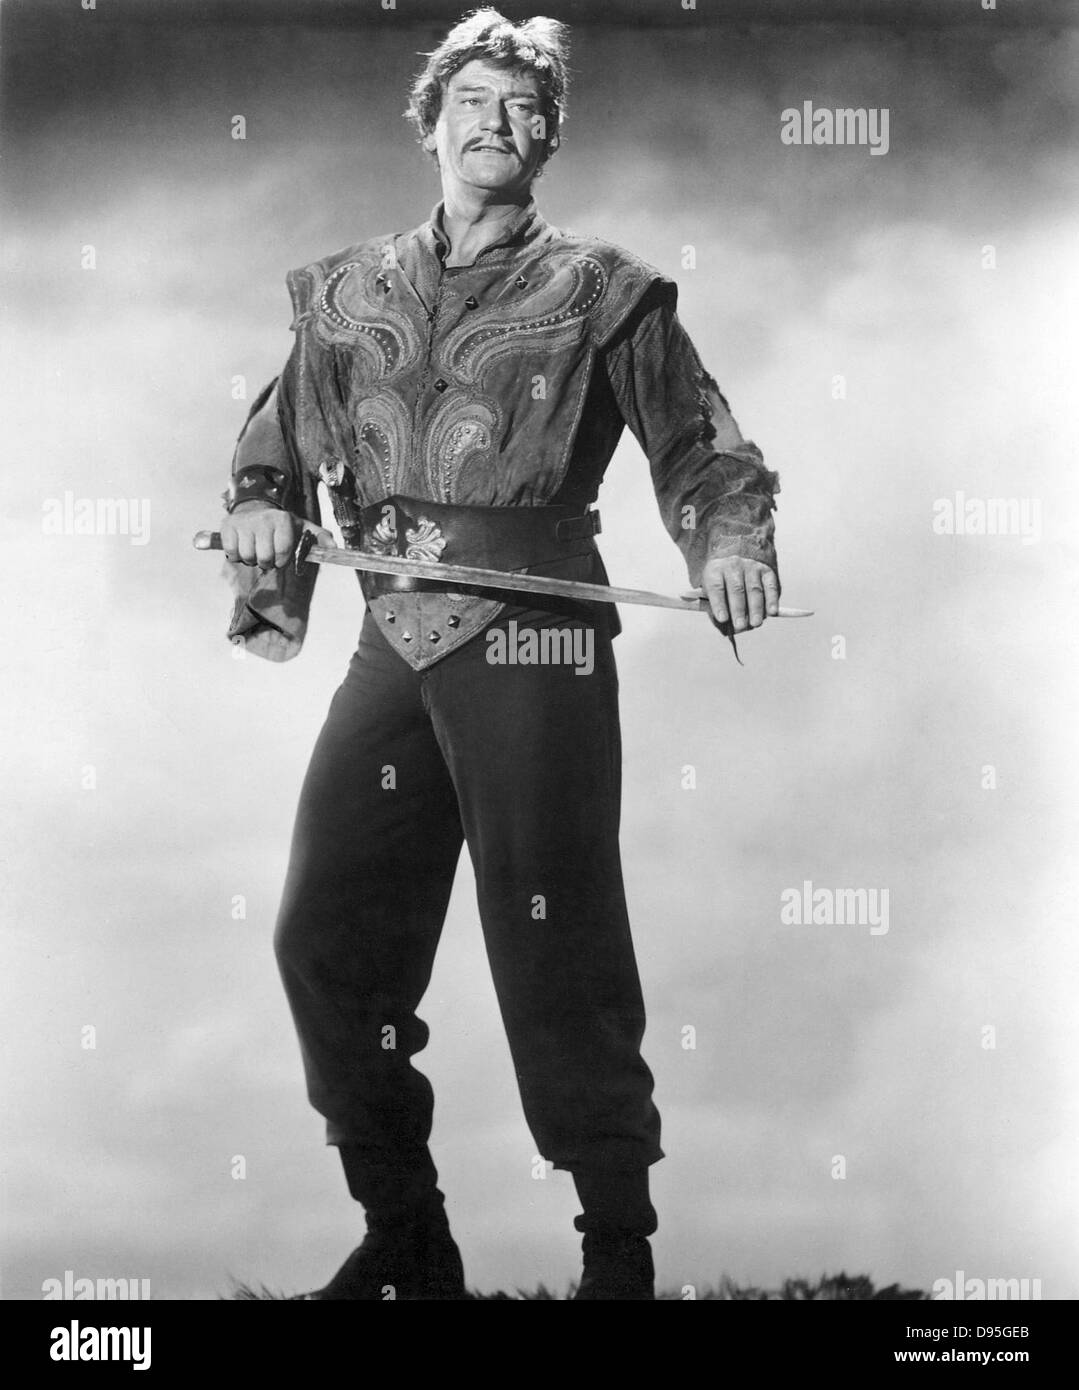 THE CONQUEROR  1956 RKO Radio Pictures film with John Wayne as Genghis Khan - Stock Image